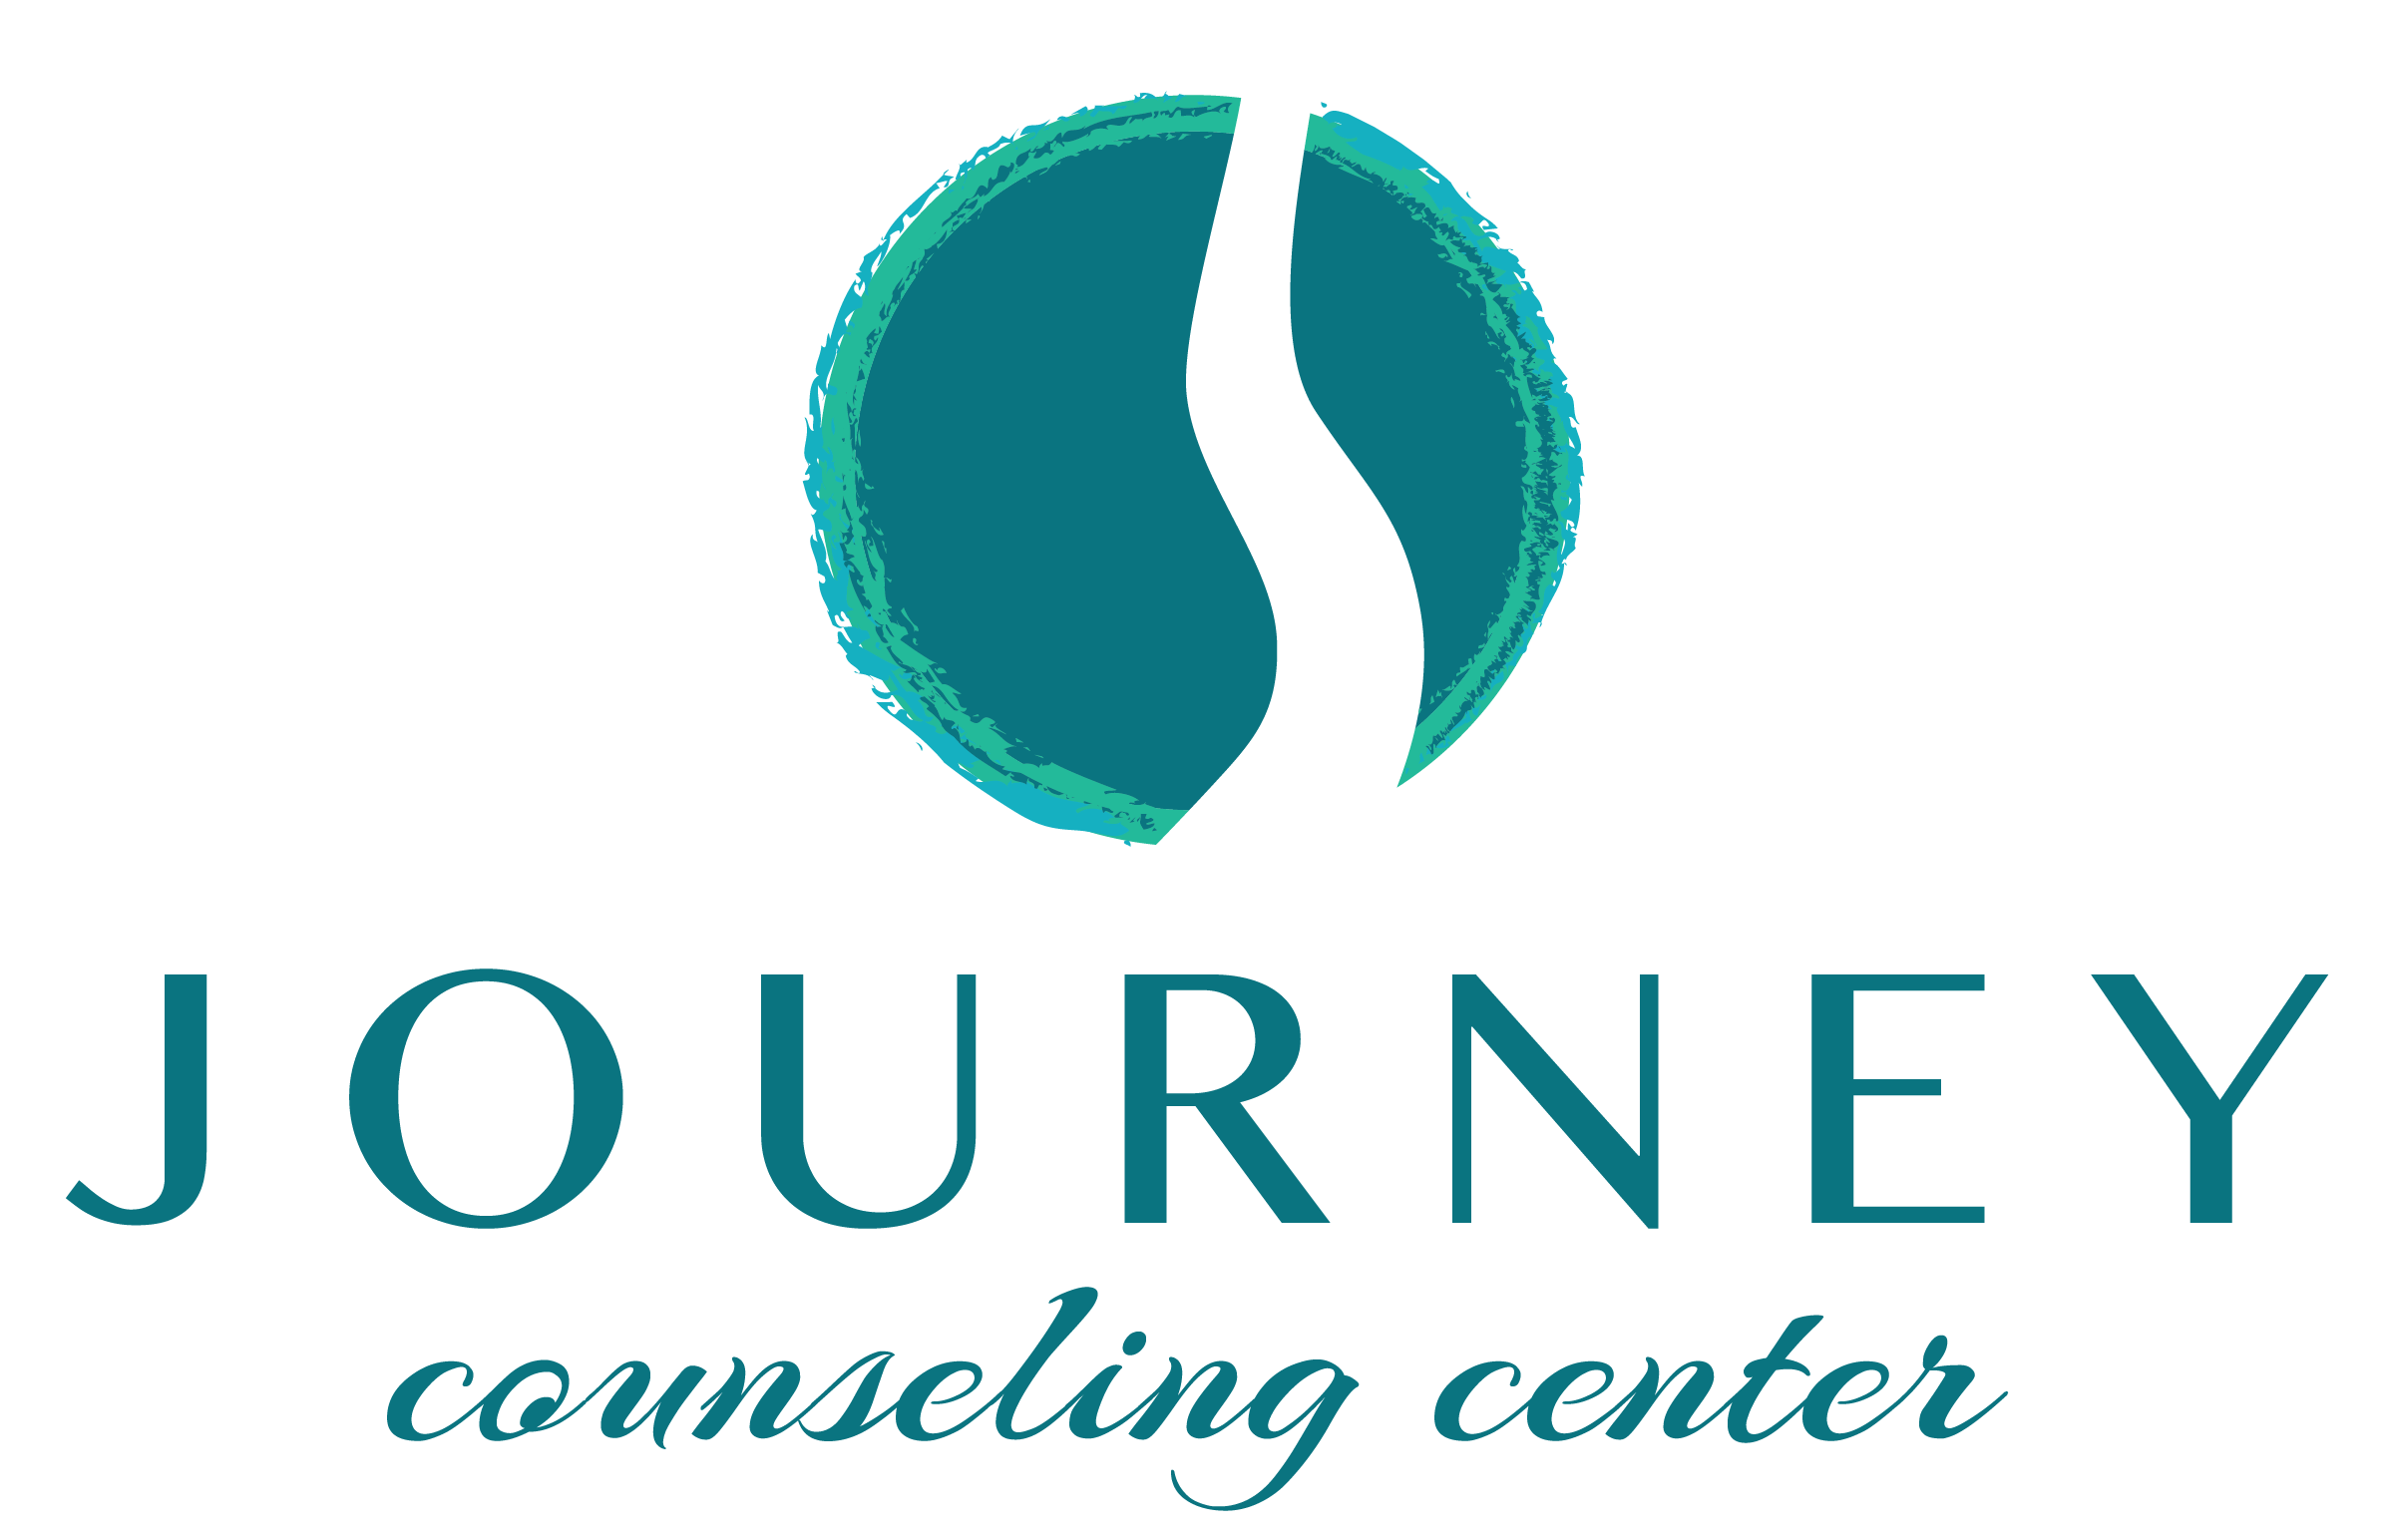 Journey Counseling